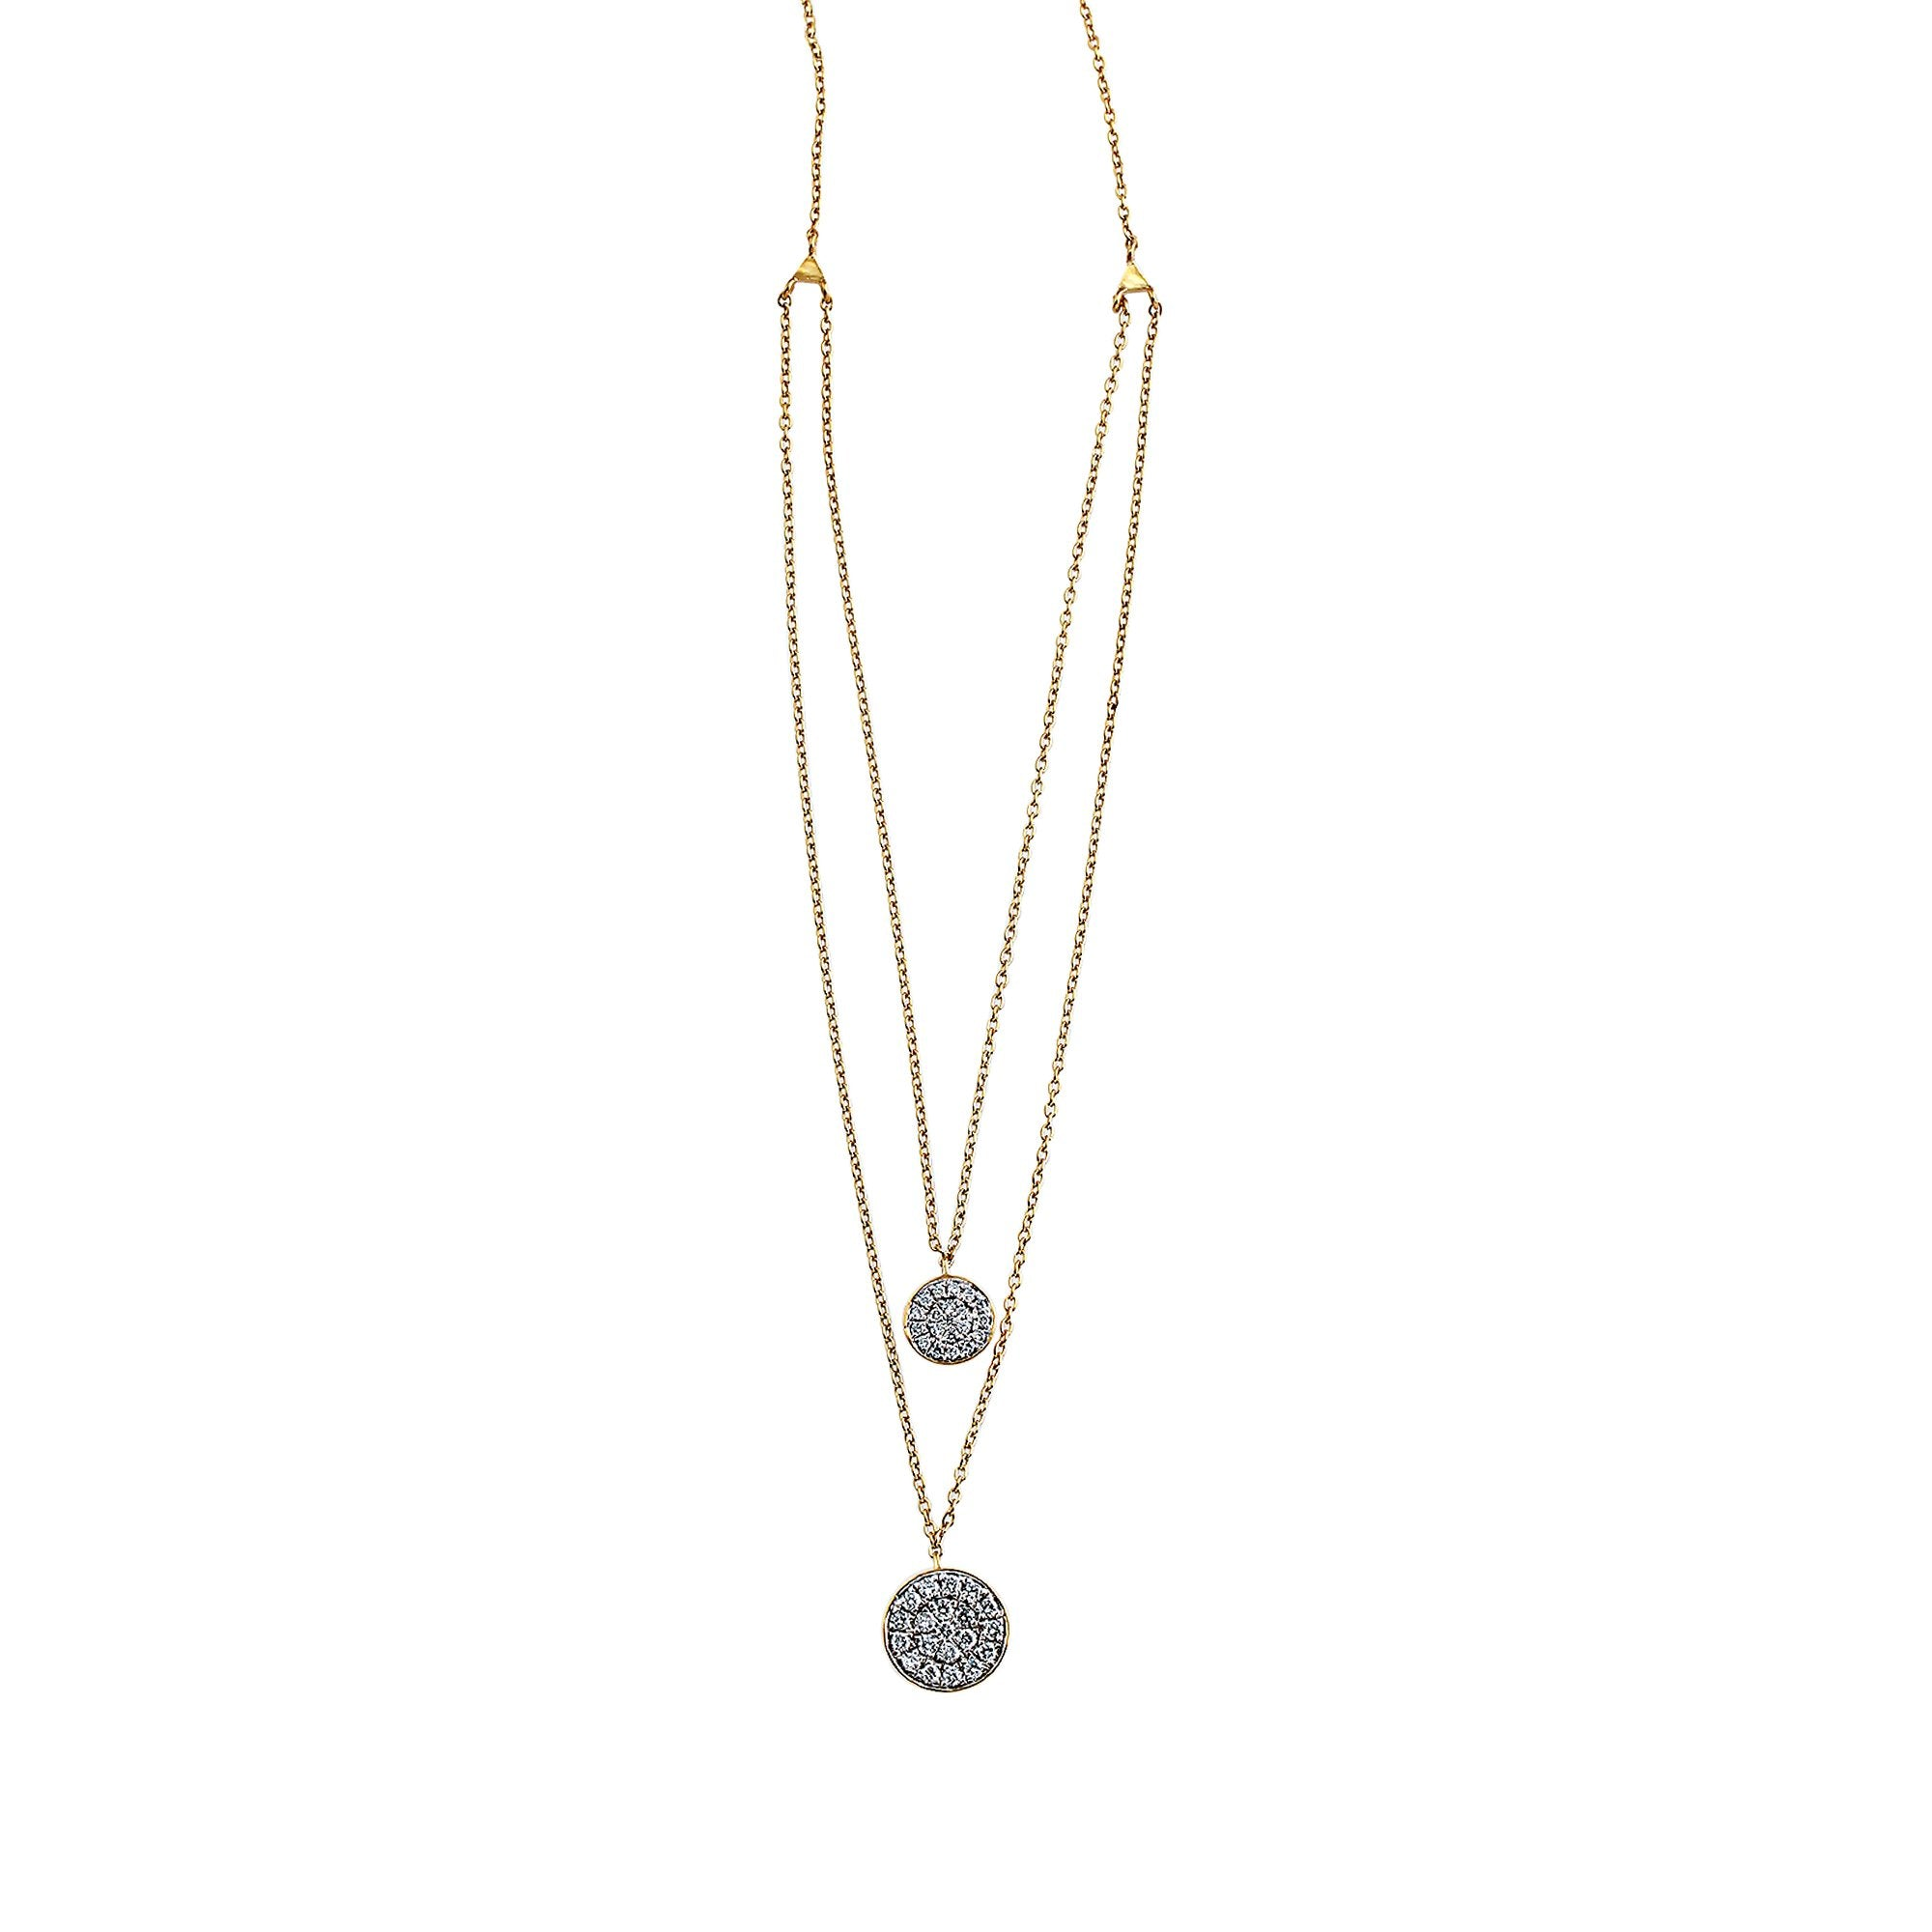 Thomas Pendant on an Adjustable 14K Yellow Gold Chain Necklace 14K Yellow Gold St